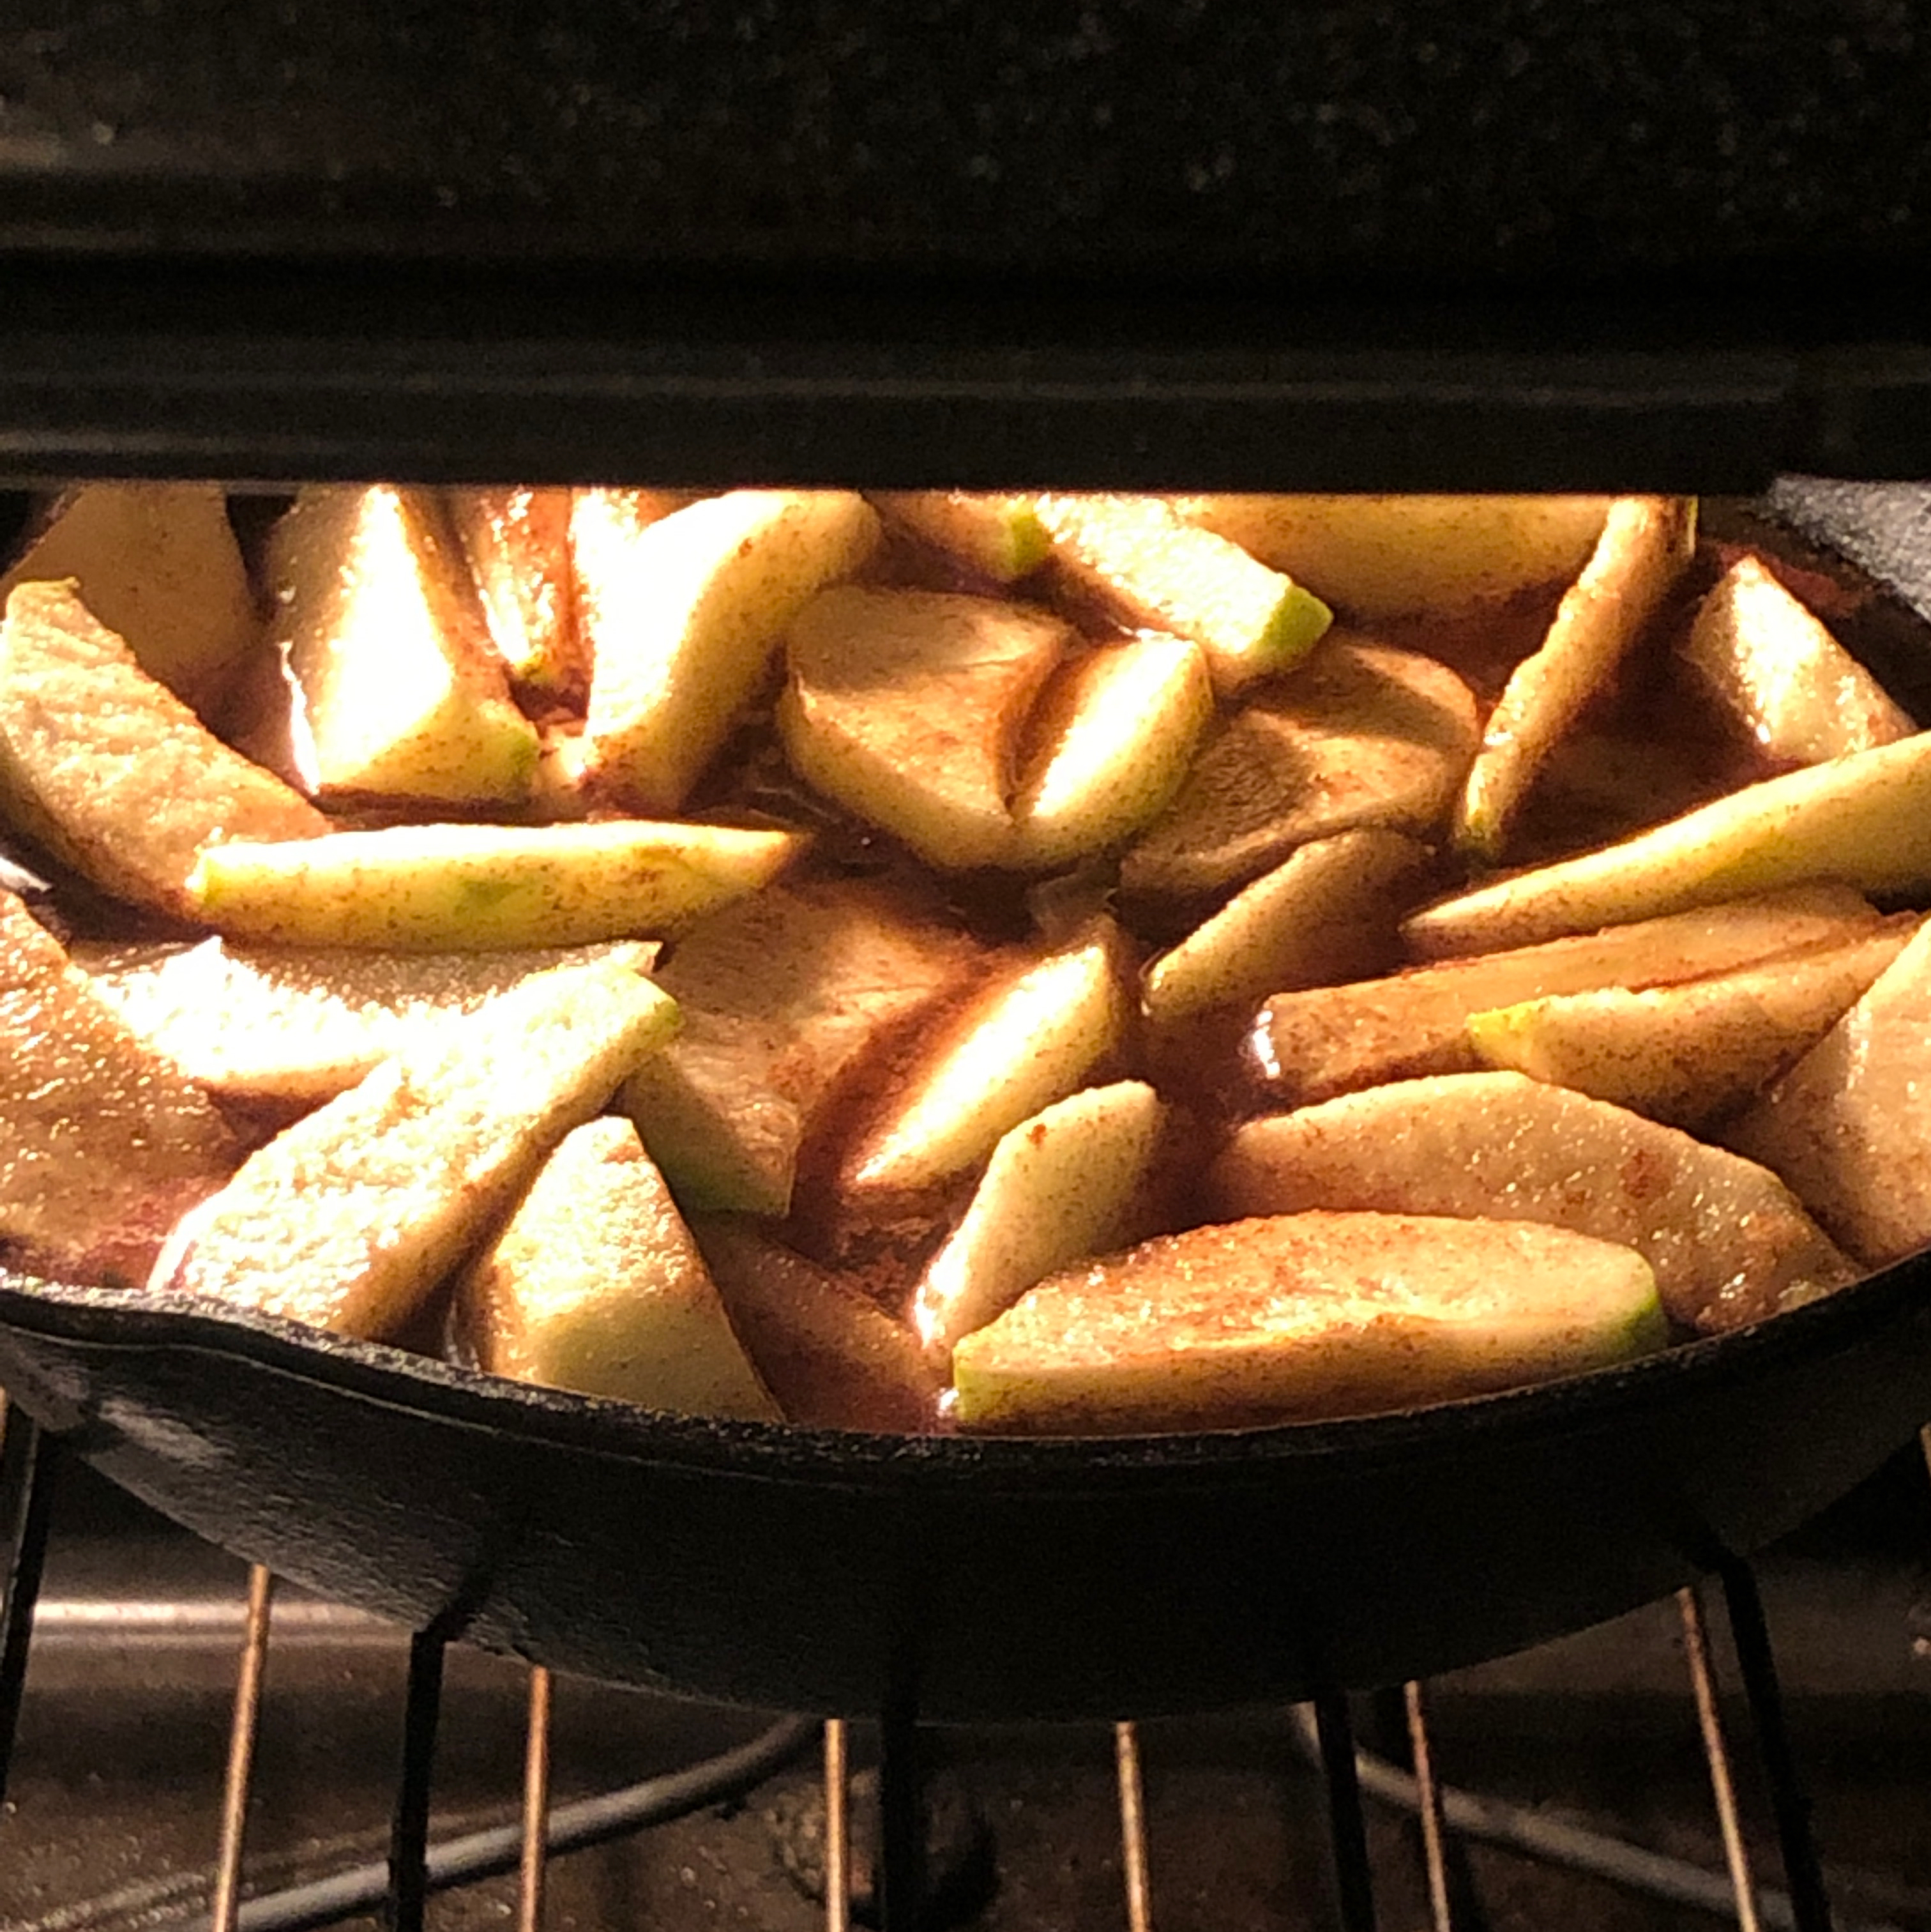 Delicious Cinnamon Baked Apples